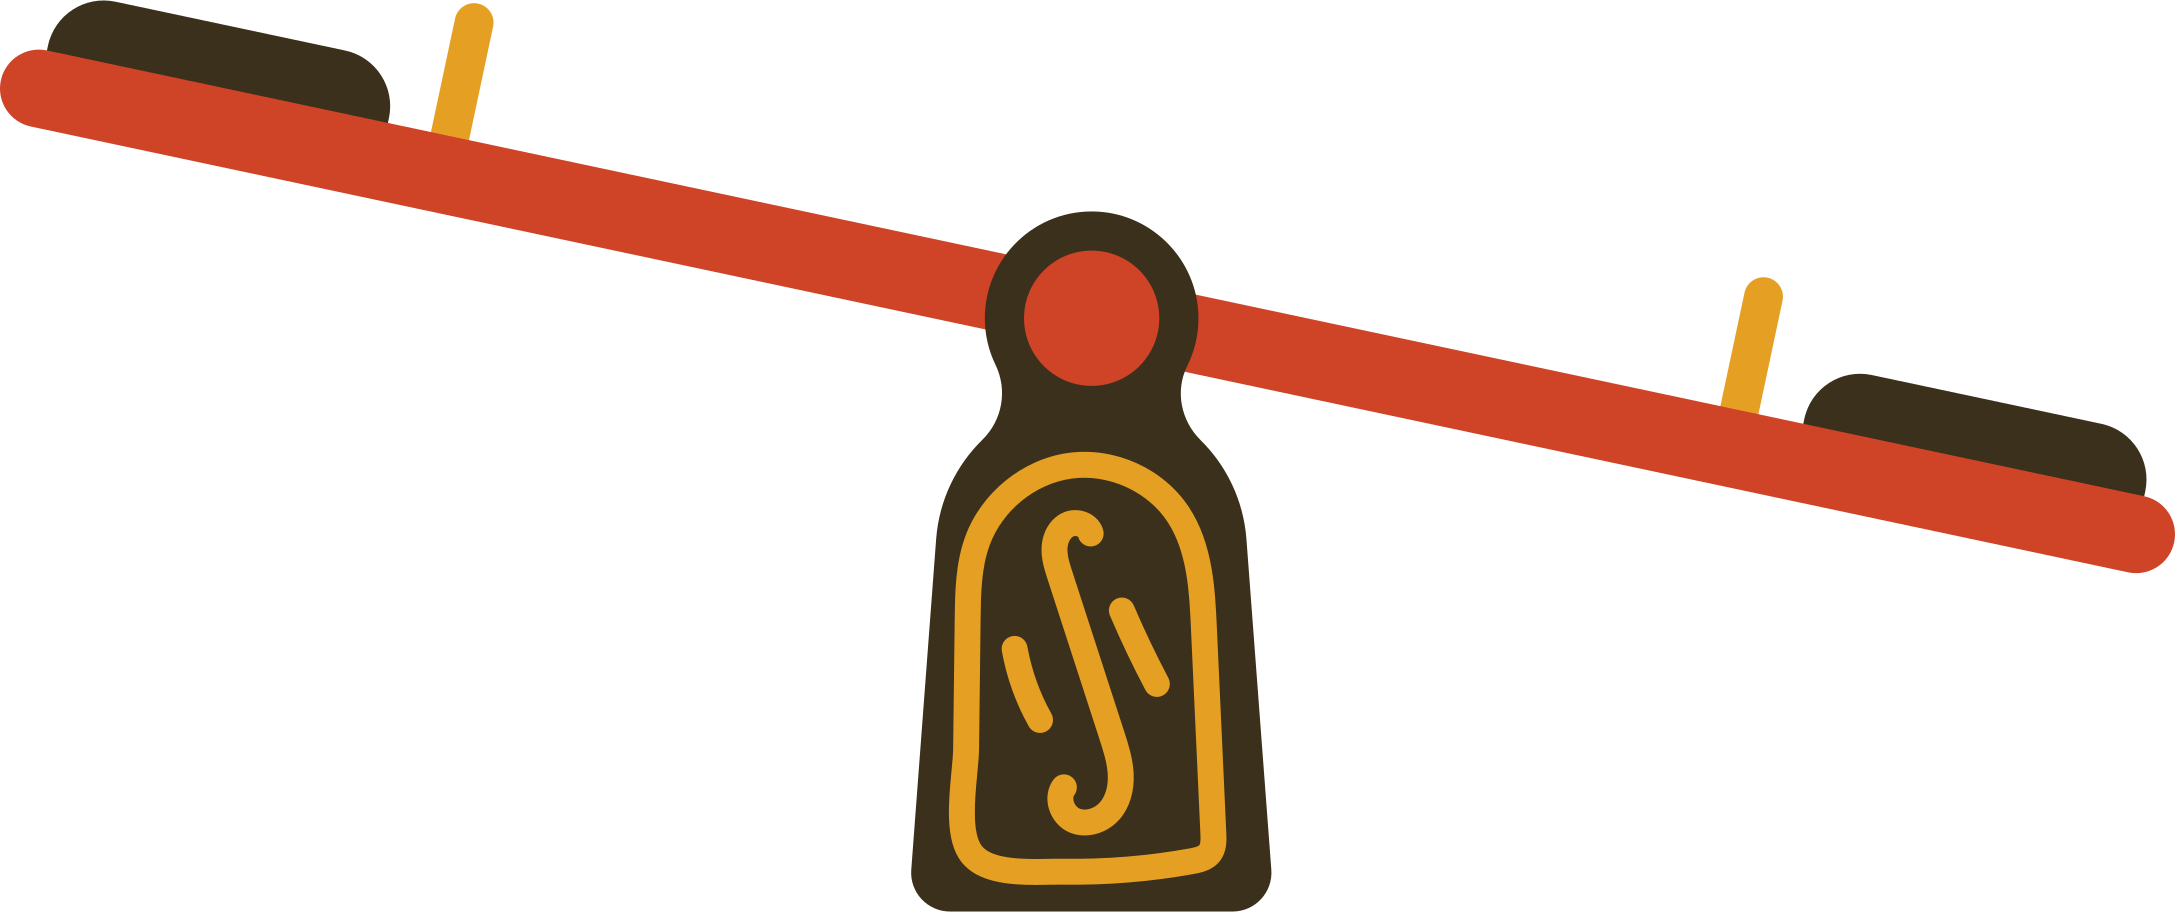 seesaw Clipart illustration in PNG, SVG